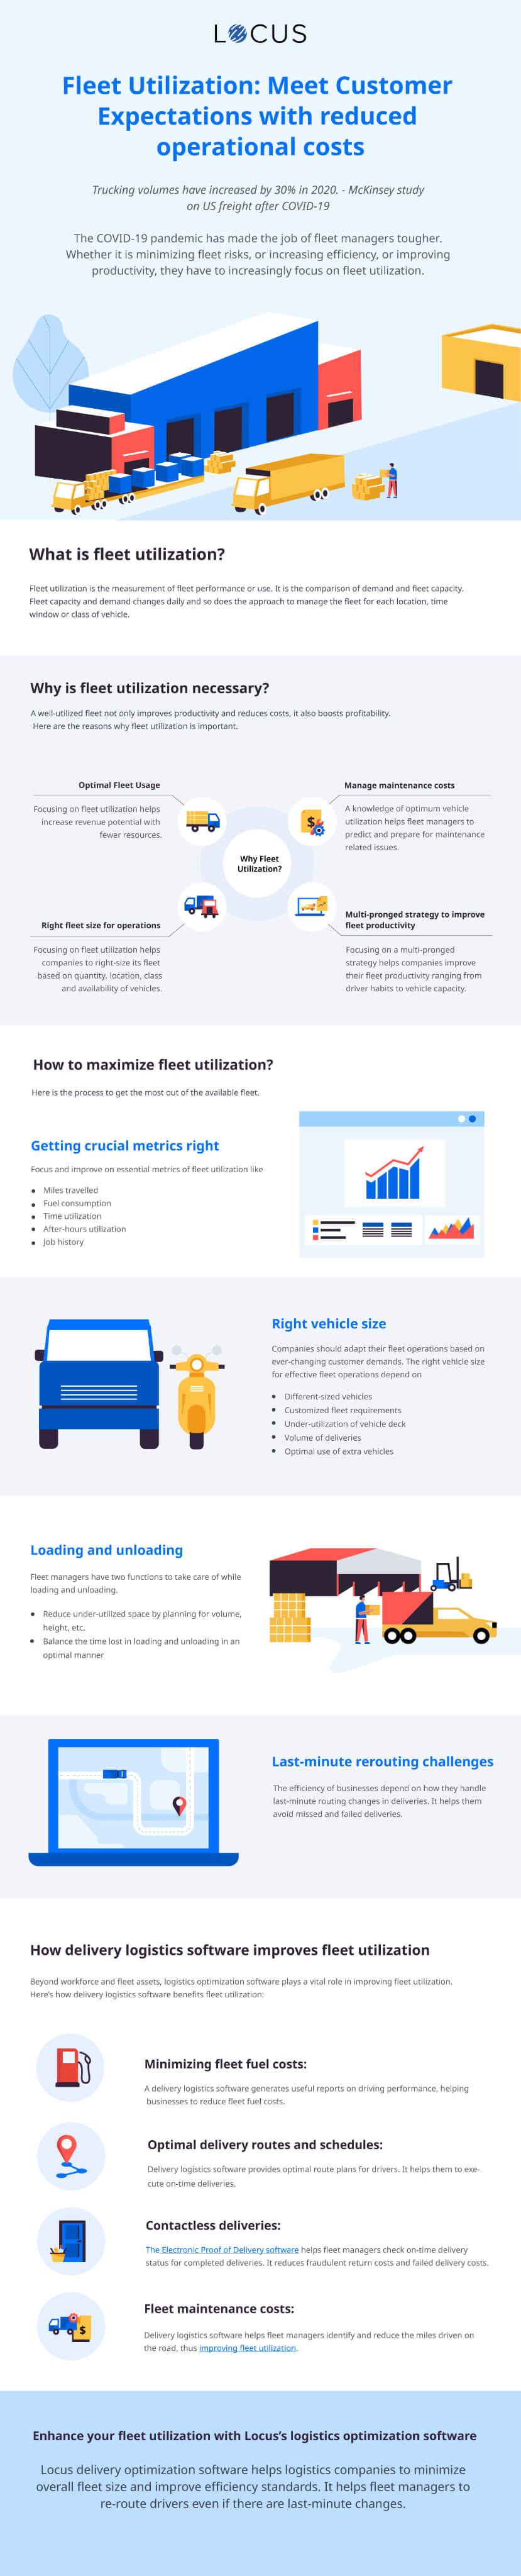 [Infographics] Maximize Fleet Utilization for Cost Reduction